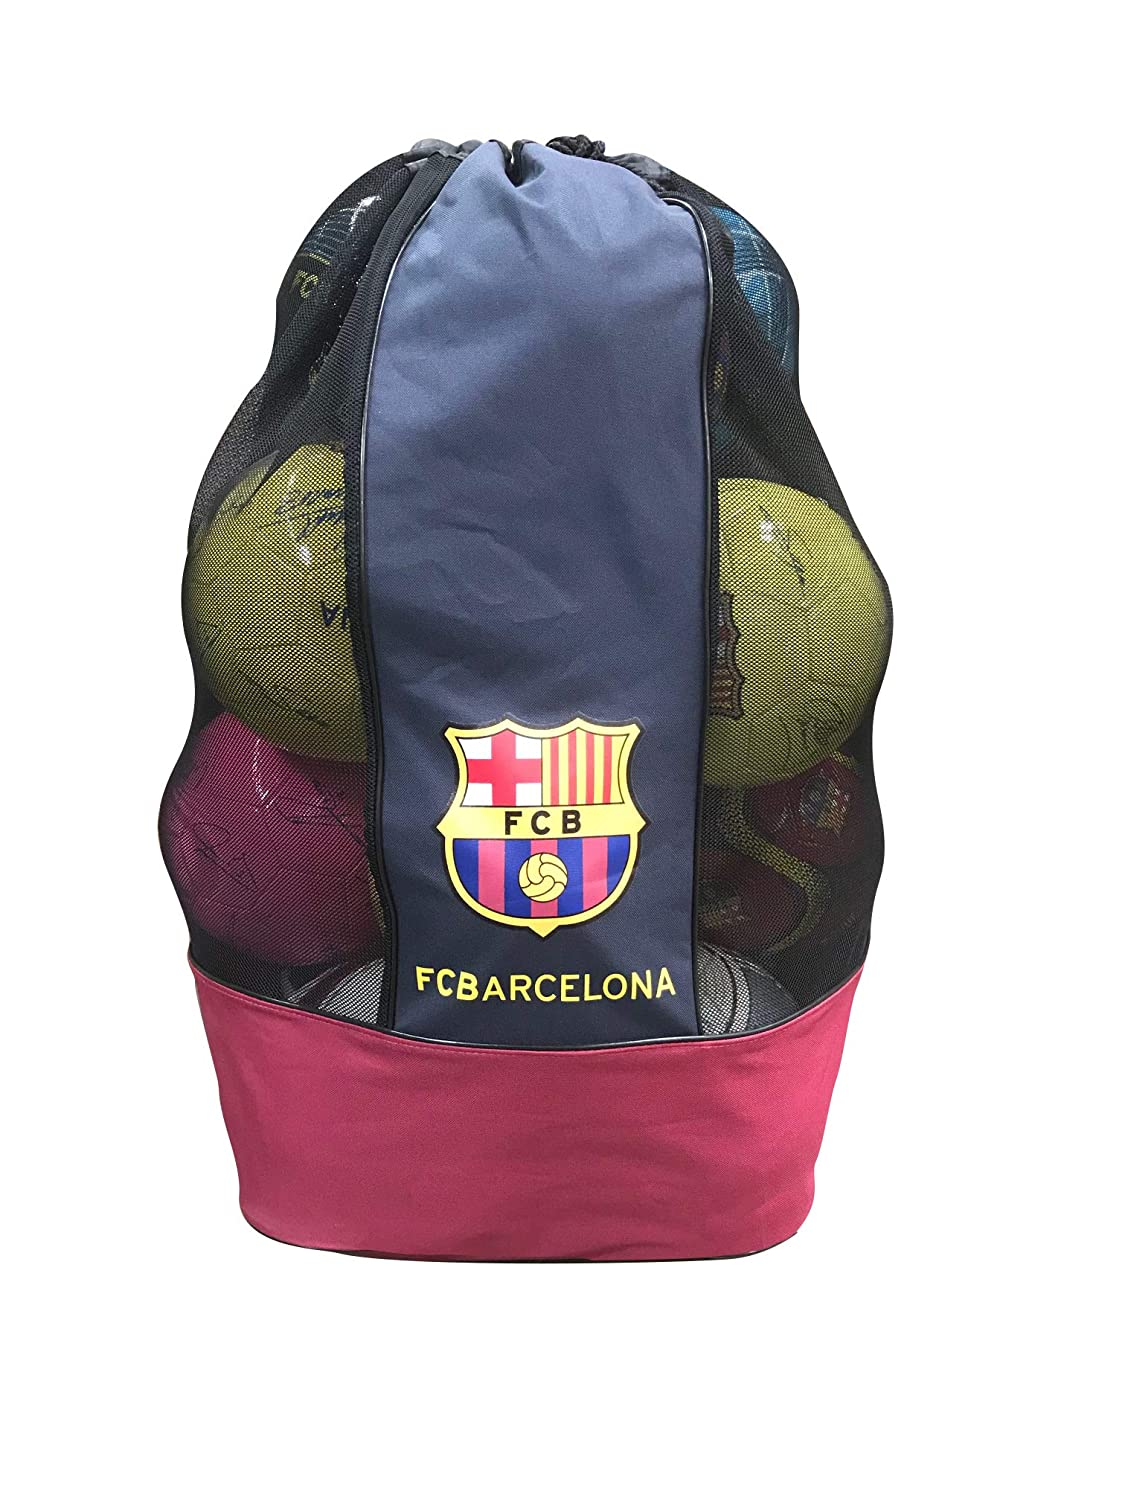 FC Barcelona Nylon Mesh Drawstring Sports Equipment Ball Bag Large Sack with Shoulder Strap for Practice size 17x17x31